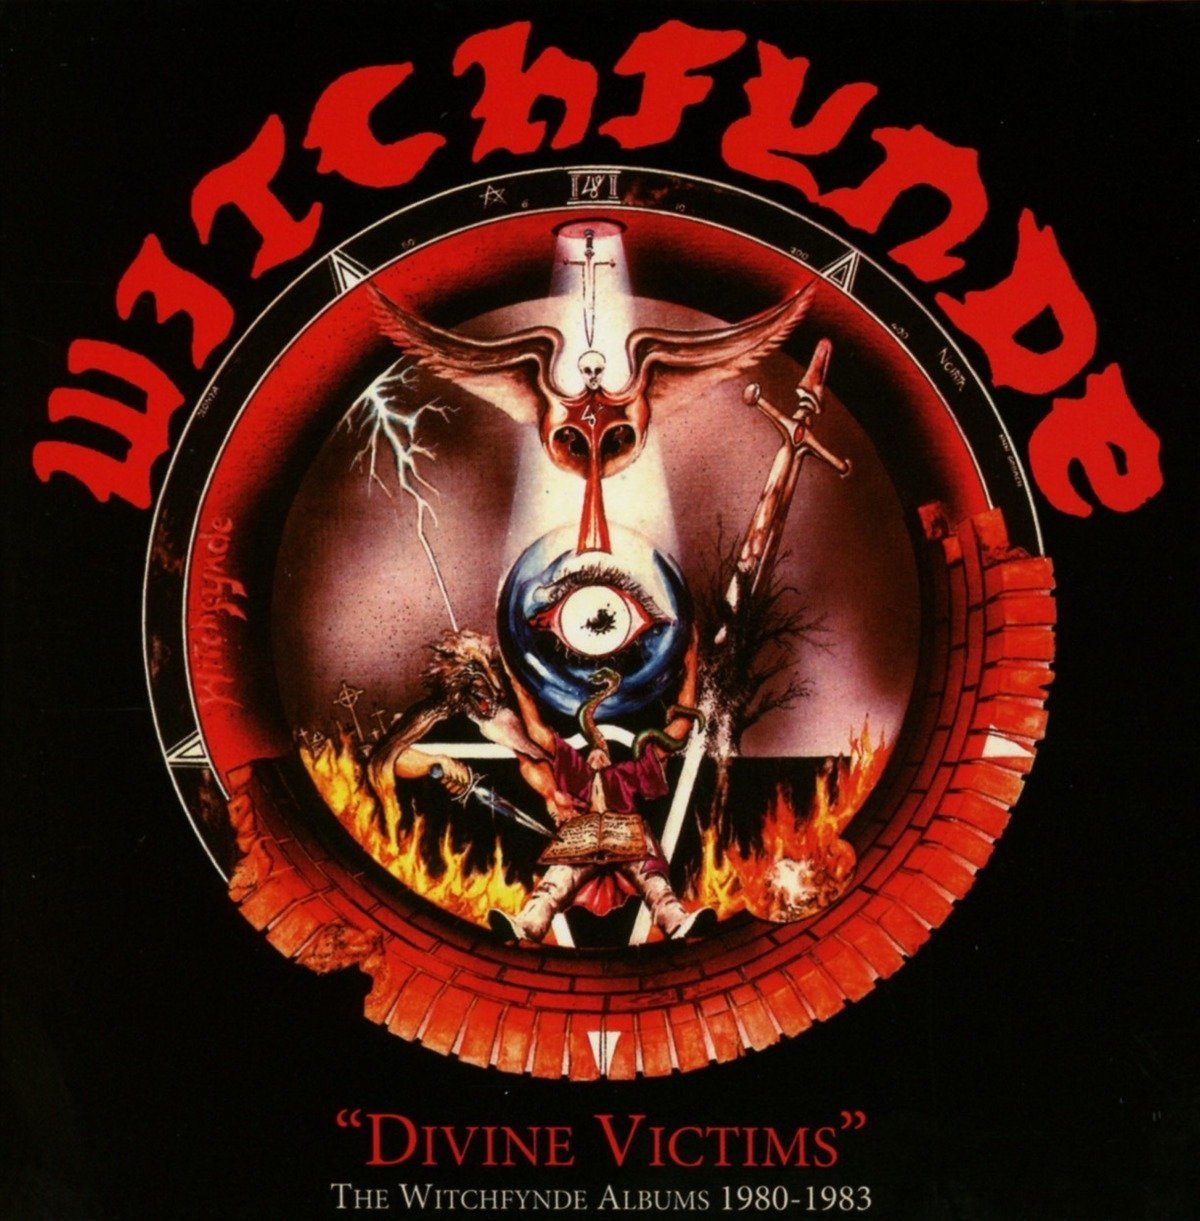 Witchfynde - Divine Victims: The Witchfynde Albums 1980-1983 (2017) [FLAC] Download